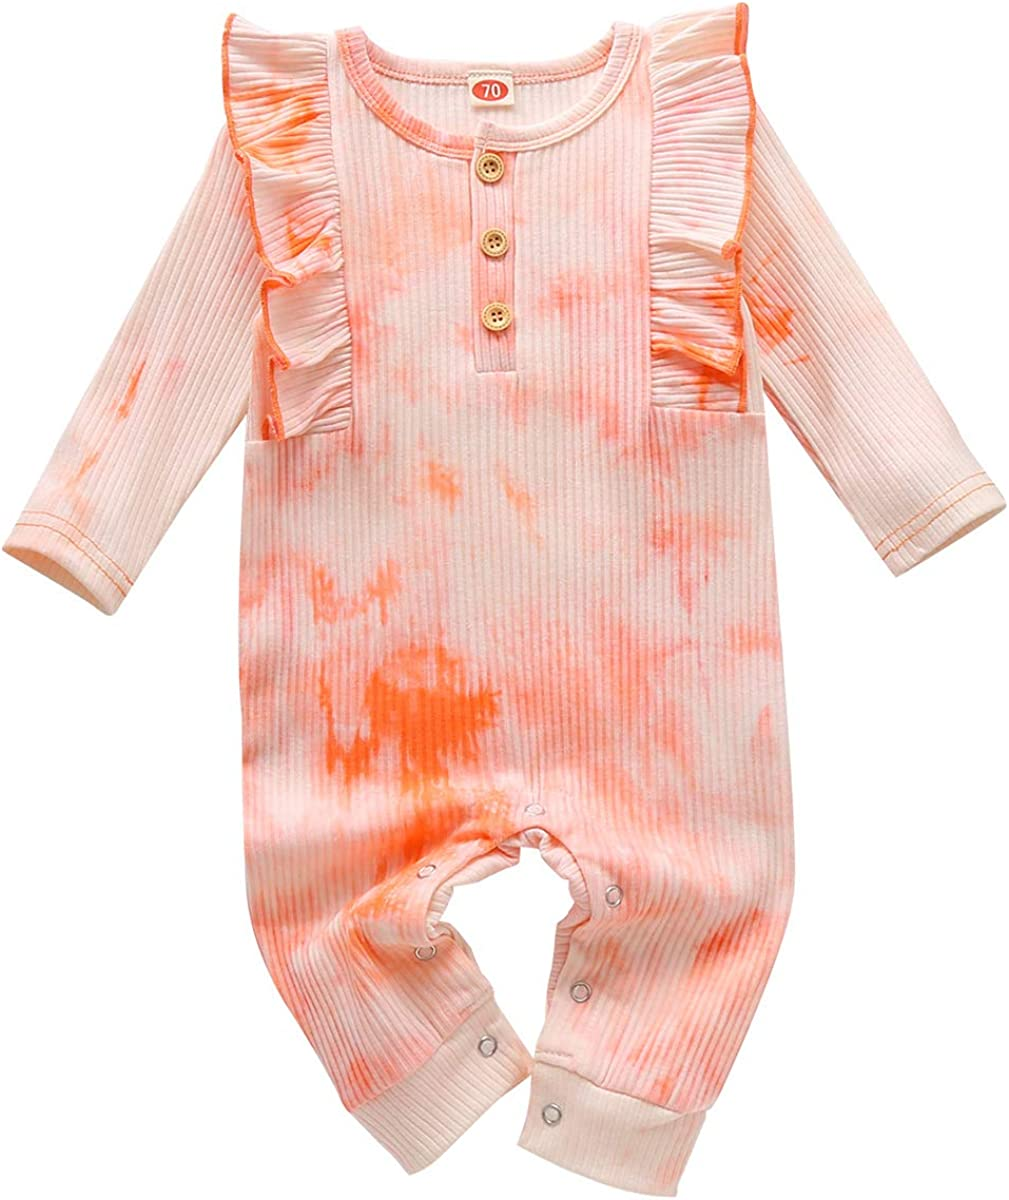 FYMNSI Newborn Infant Baby Girls Boys Tie Dye Printed Romper One Piece Bodysuit Jumpsuit Fall Winter Pajamas Casual Clothes for 0-18 Months